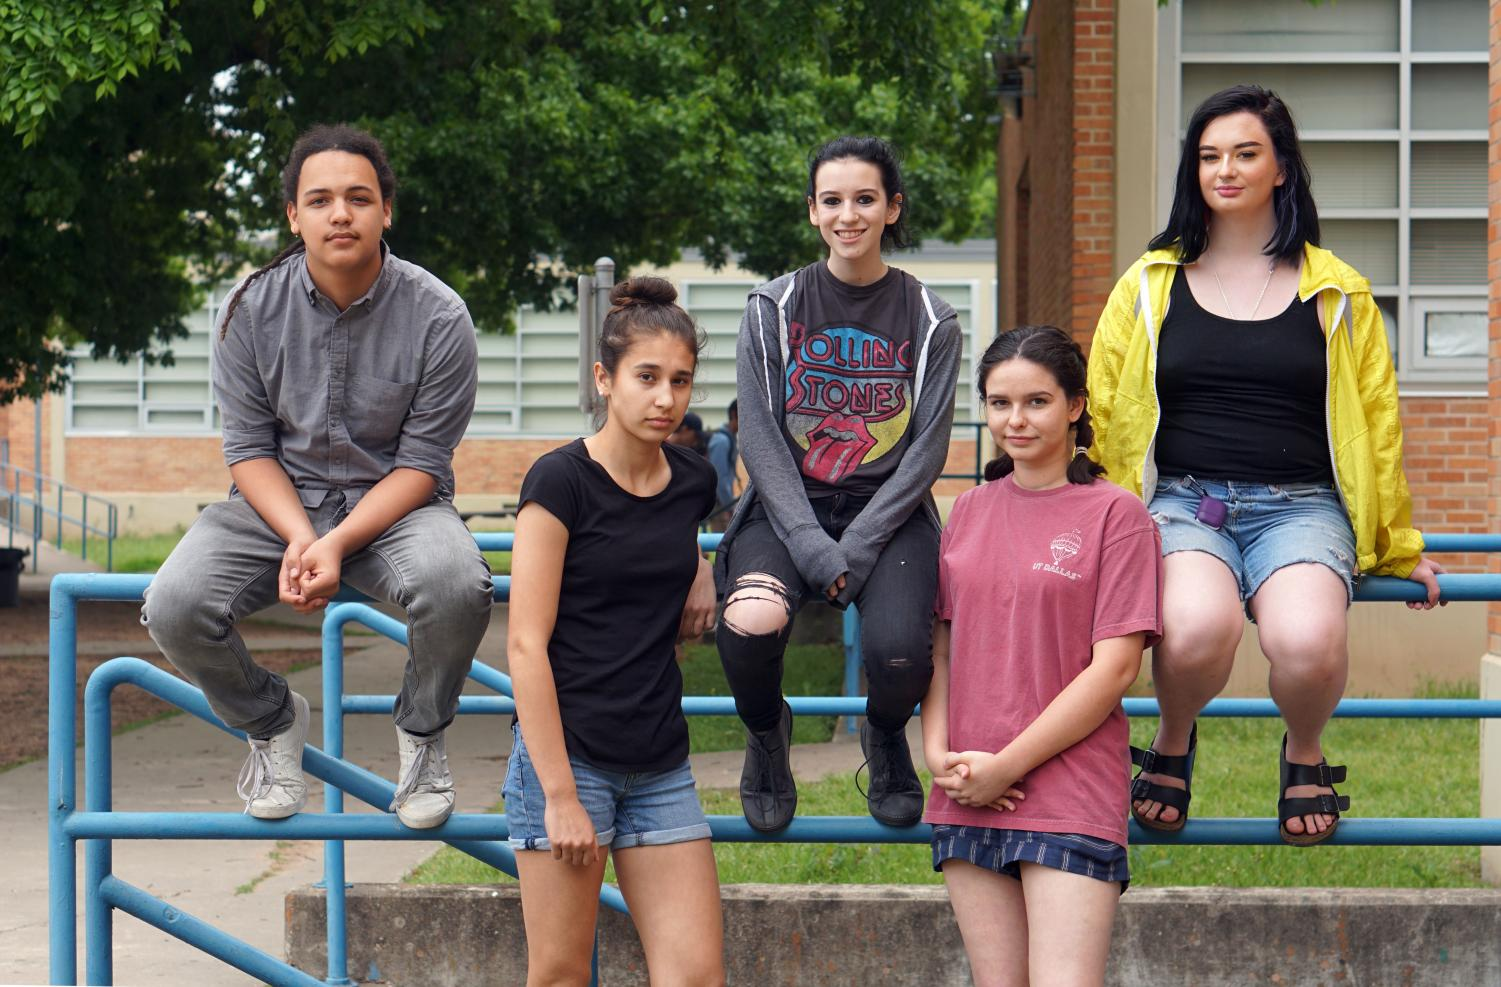 TAKING CONTROL OF THEIR FUTURES: Members of Just Fund It club (left to right): sophomore Denali Jah, sophomore Natalie Suri, junior Gwyneth Yeager, sophomore Meg Rowan and senior Emily Freeman. Photo by Bella Russo.